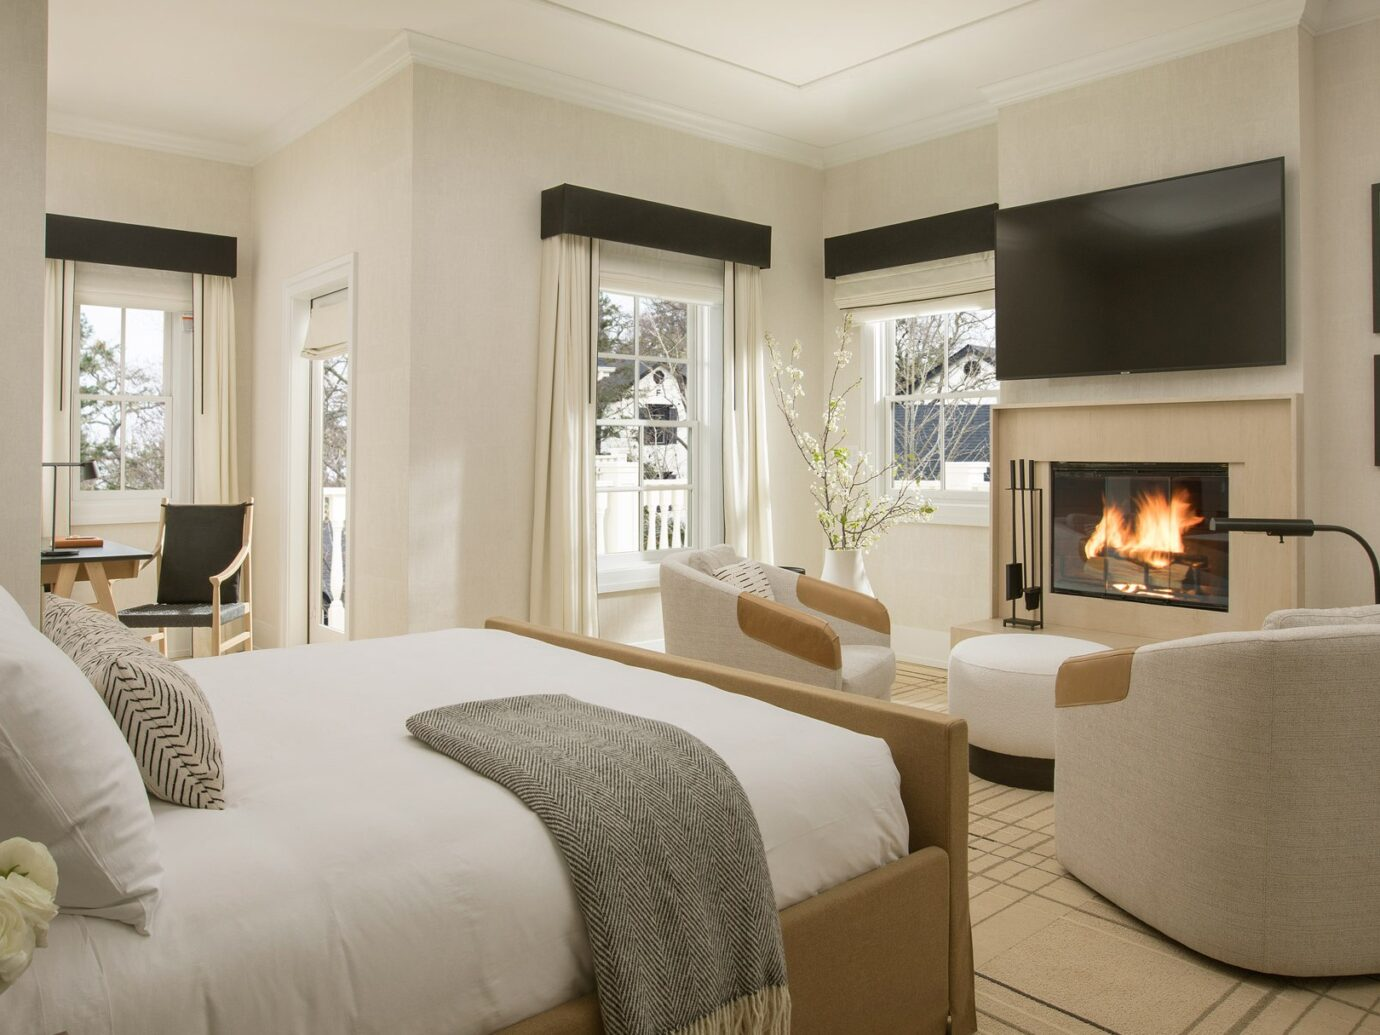 Bedroom at MacArthur Place in Sonoma